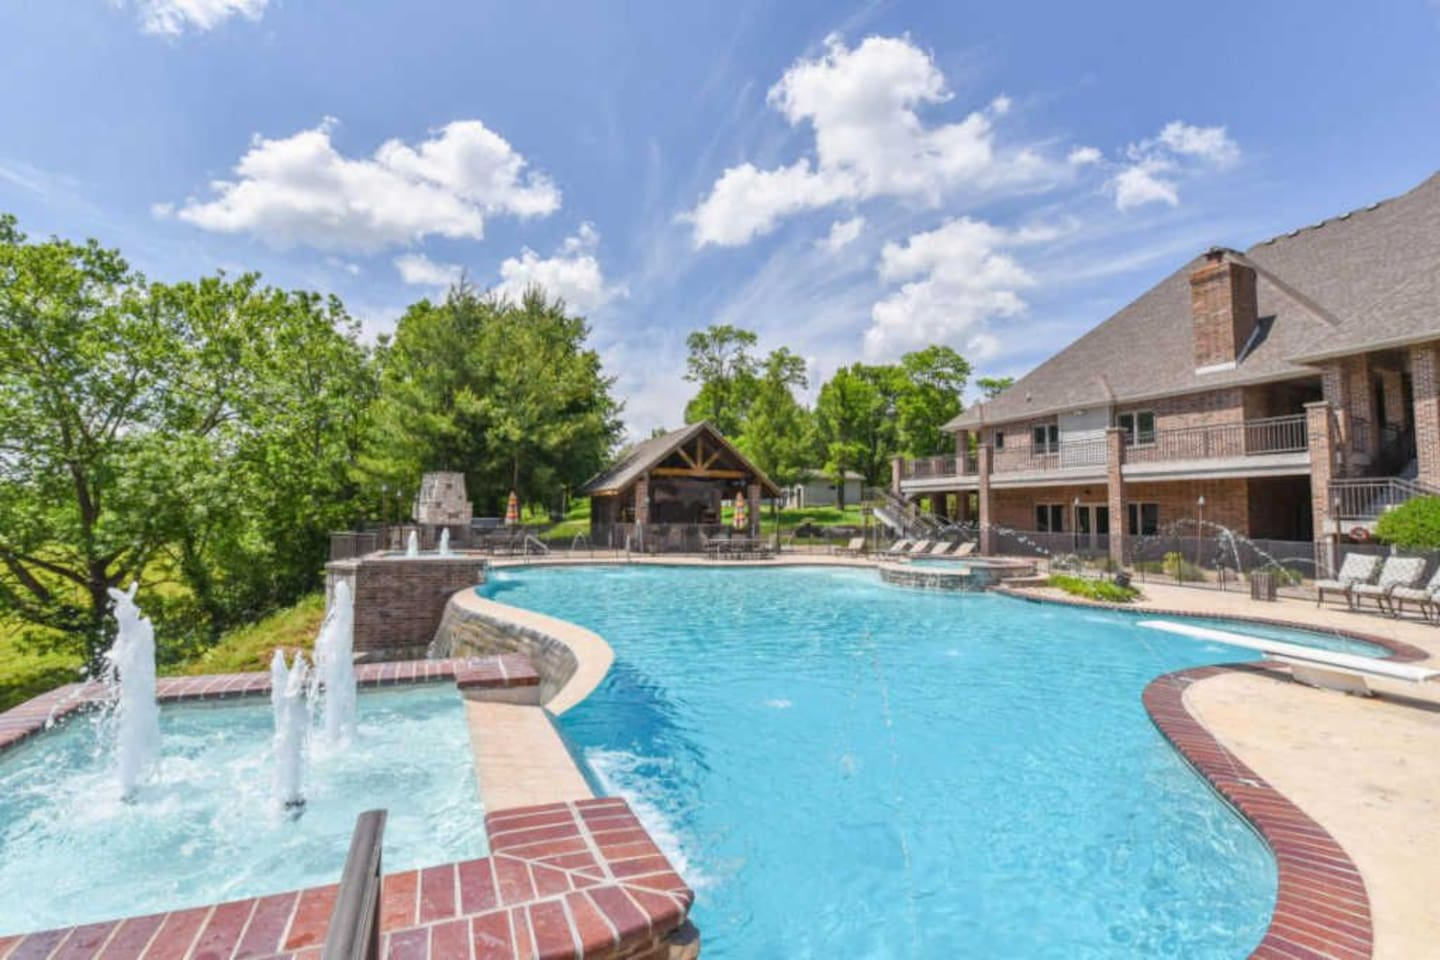 Unbelievable pool deck area.  Over 10,000 square feet!  Tiki bar/cabana, upper and lower deck, huge pool with beautiful fountains and diving board.